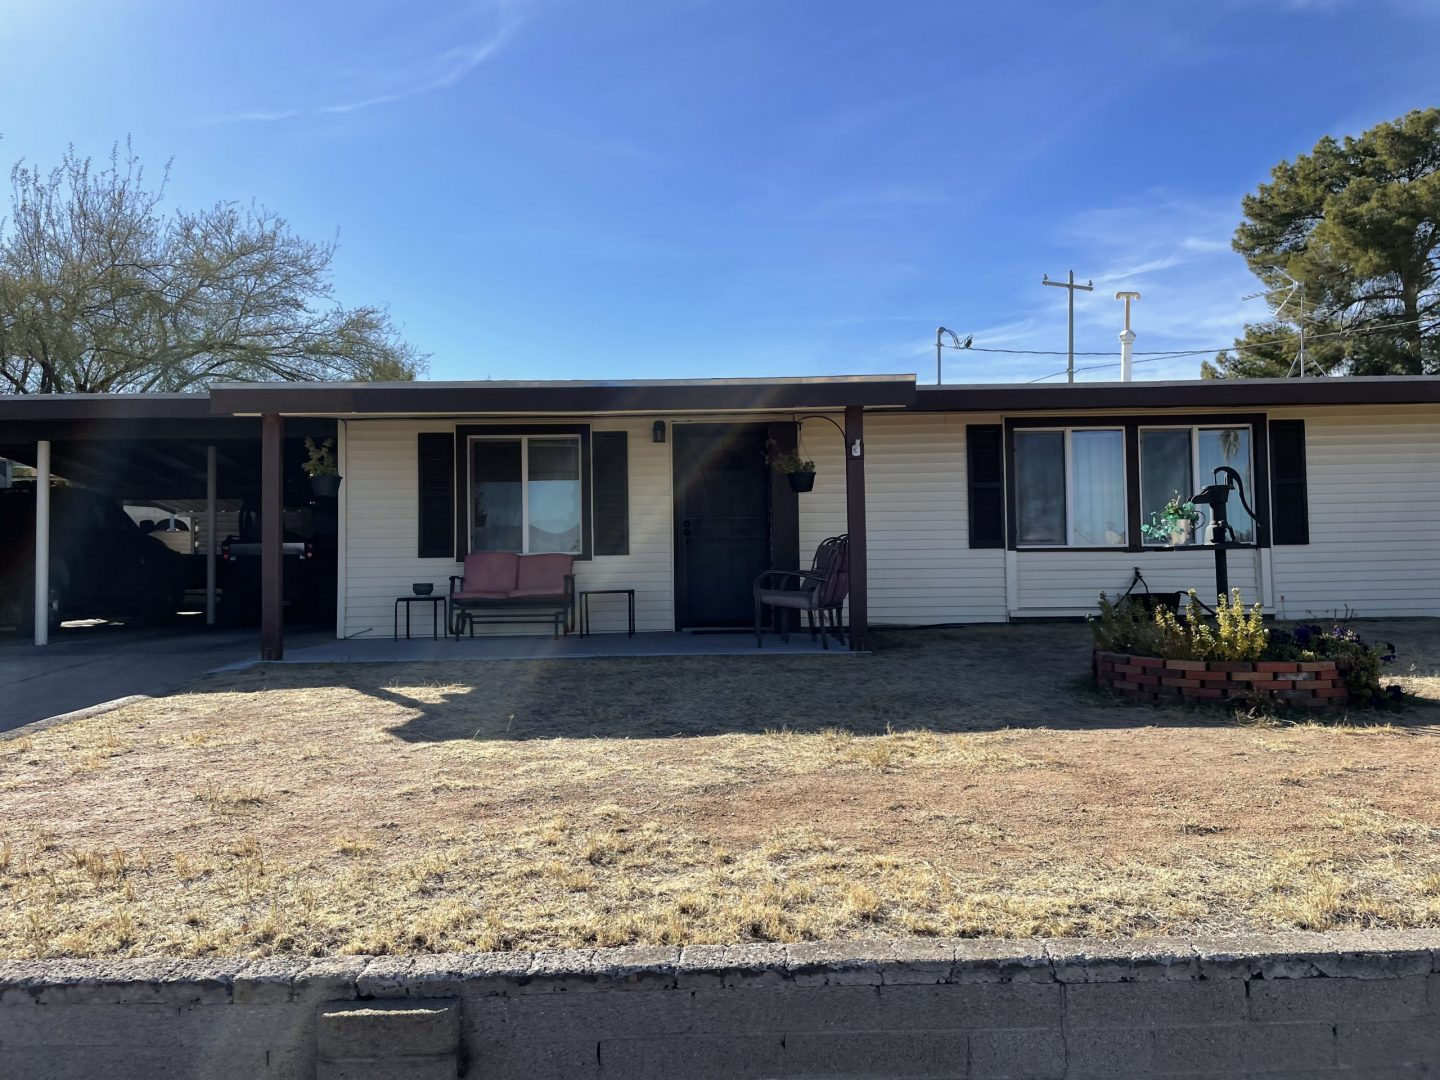 602 W 4th Ave, San Manuel AZ 85631